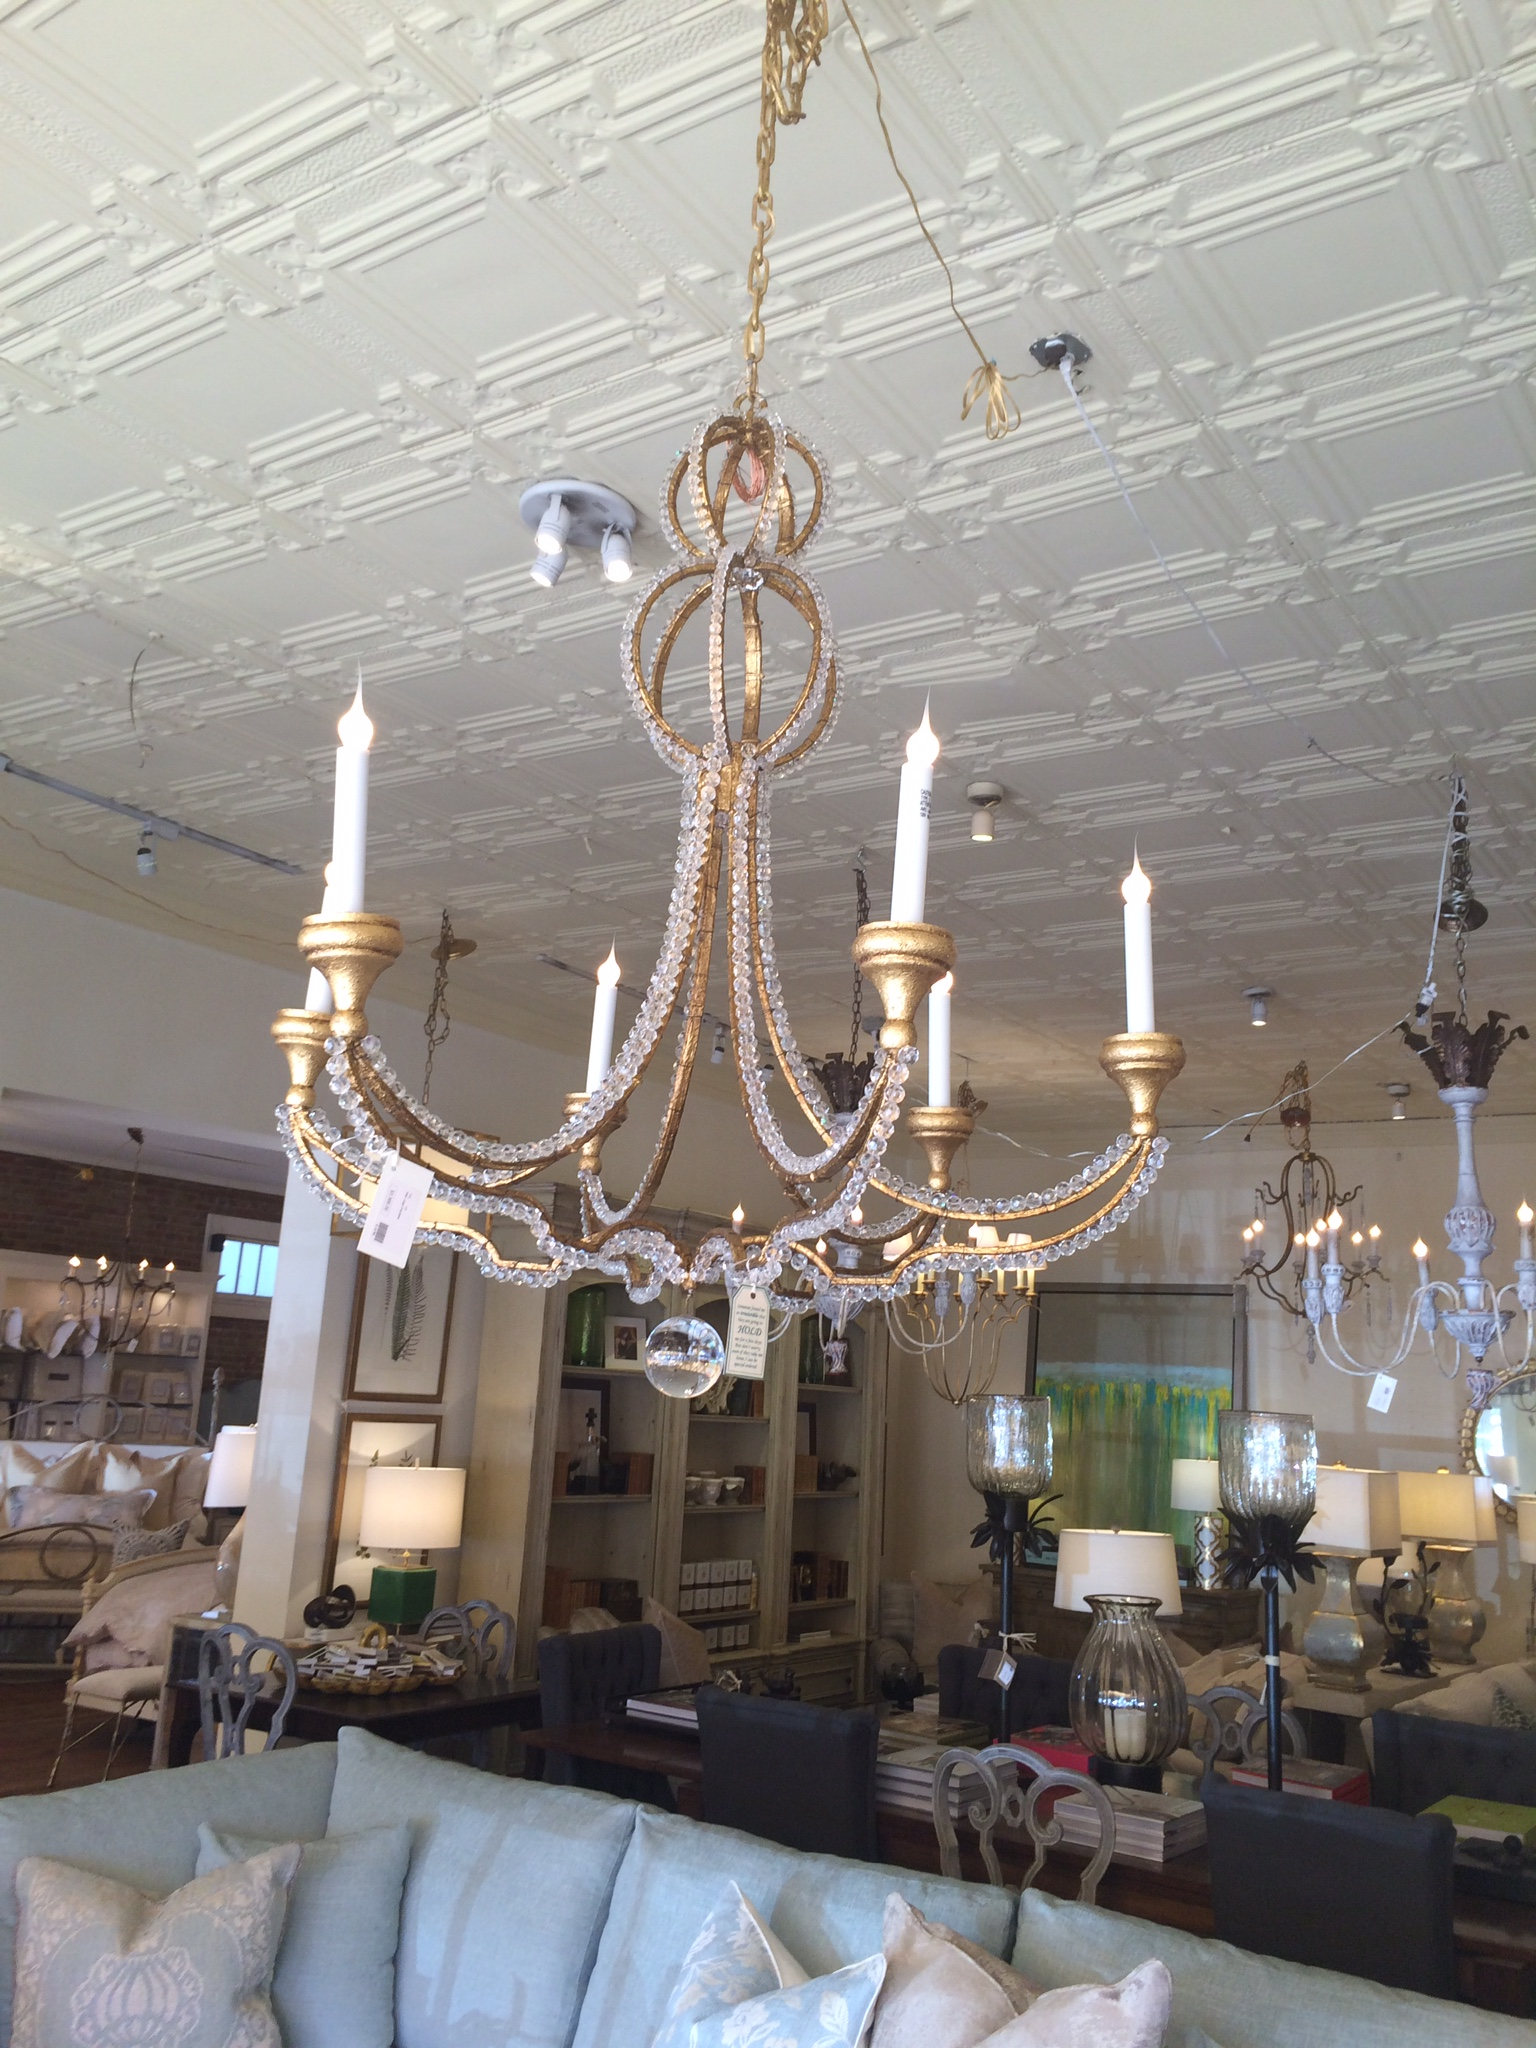 i'm thinking something like this for my mother's dining room chandelier